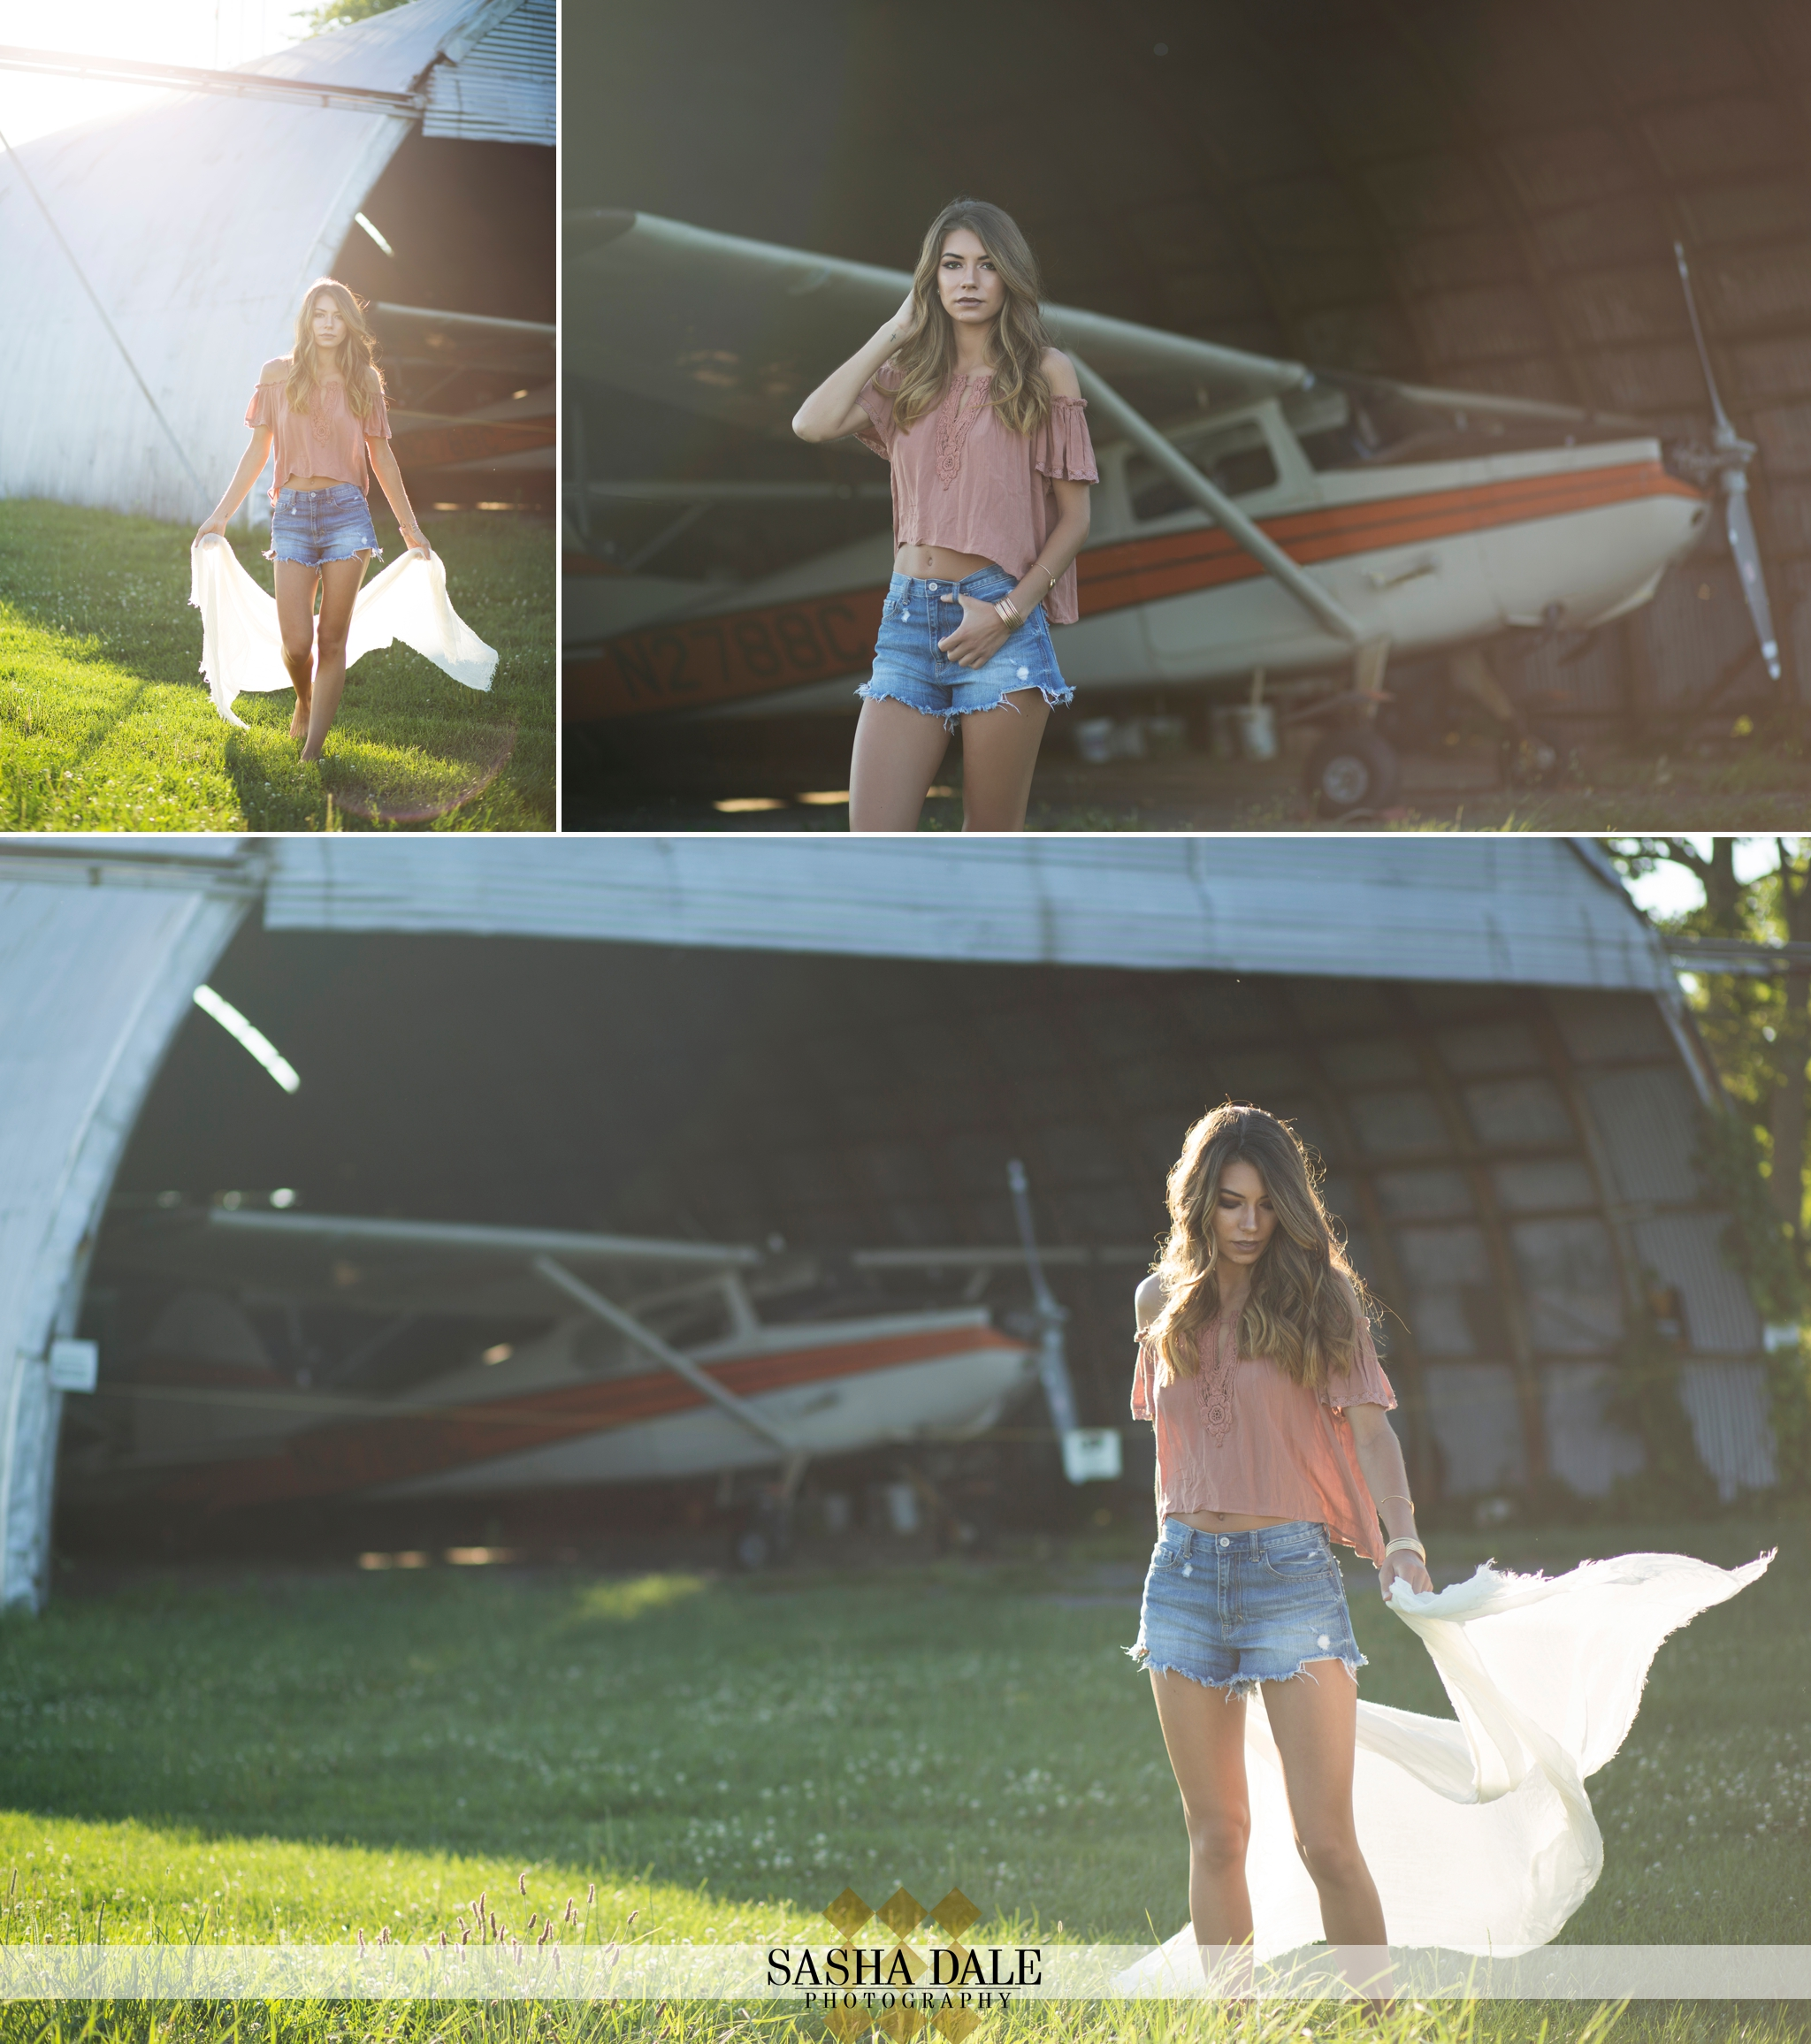 Bohemian Boudoir Shoot, Boho, Boudoir, Connecticut Boudoir Photographer, CT Boudoir Photographers, Amazing Boudoir Photographer, Sasha Dale Photography, Flower wreath, teepee, airplane